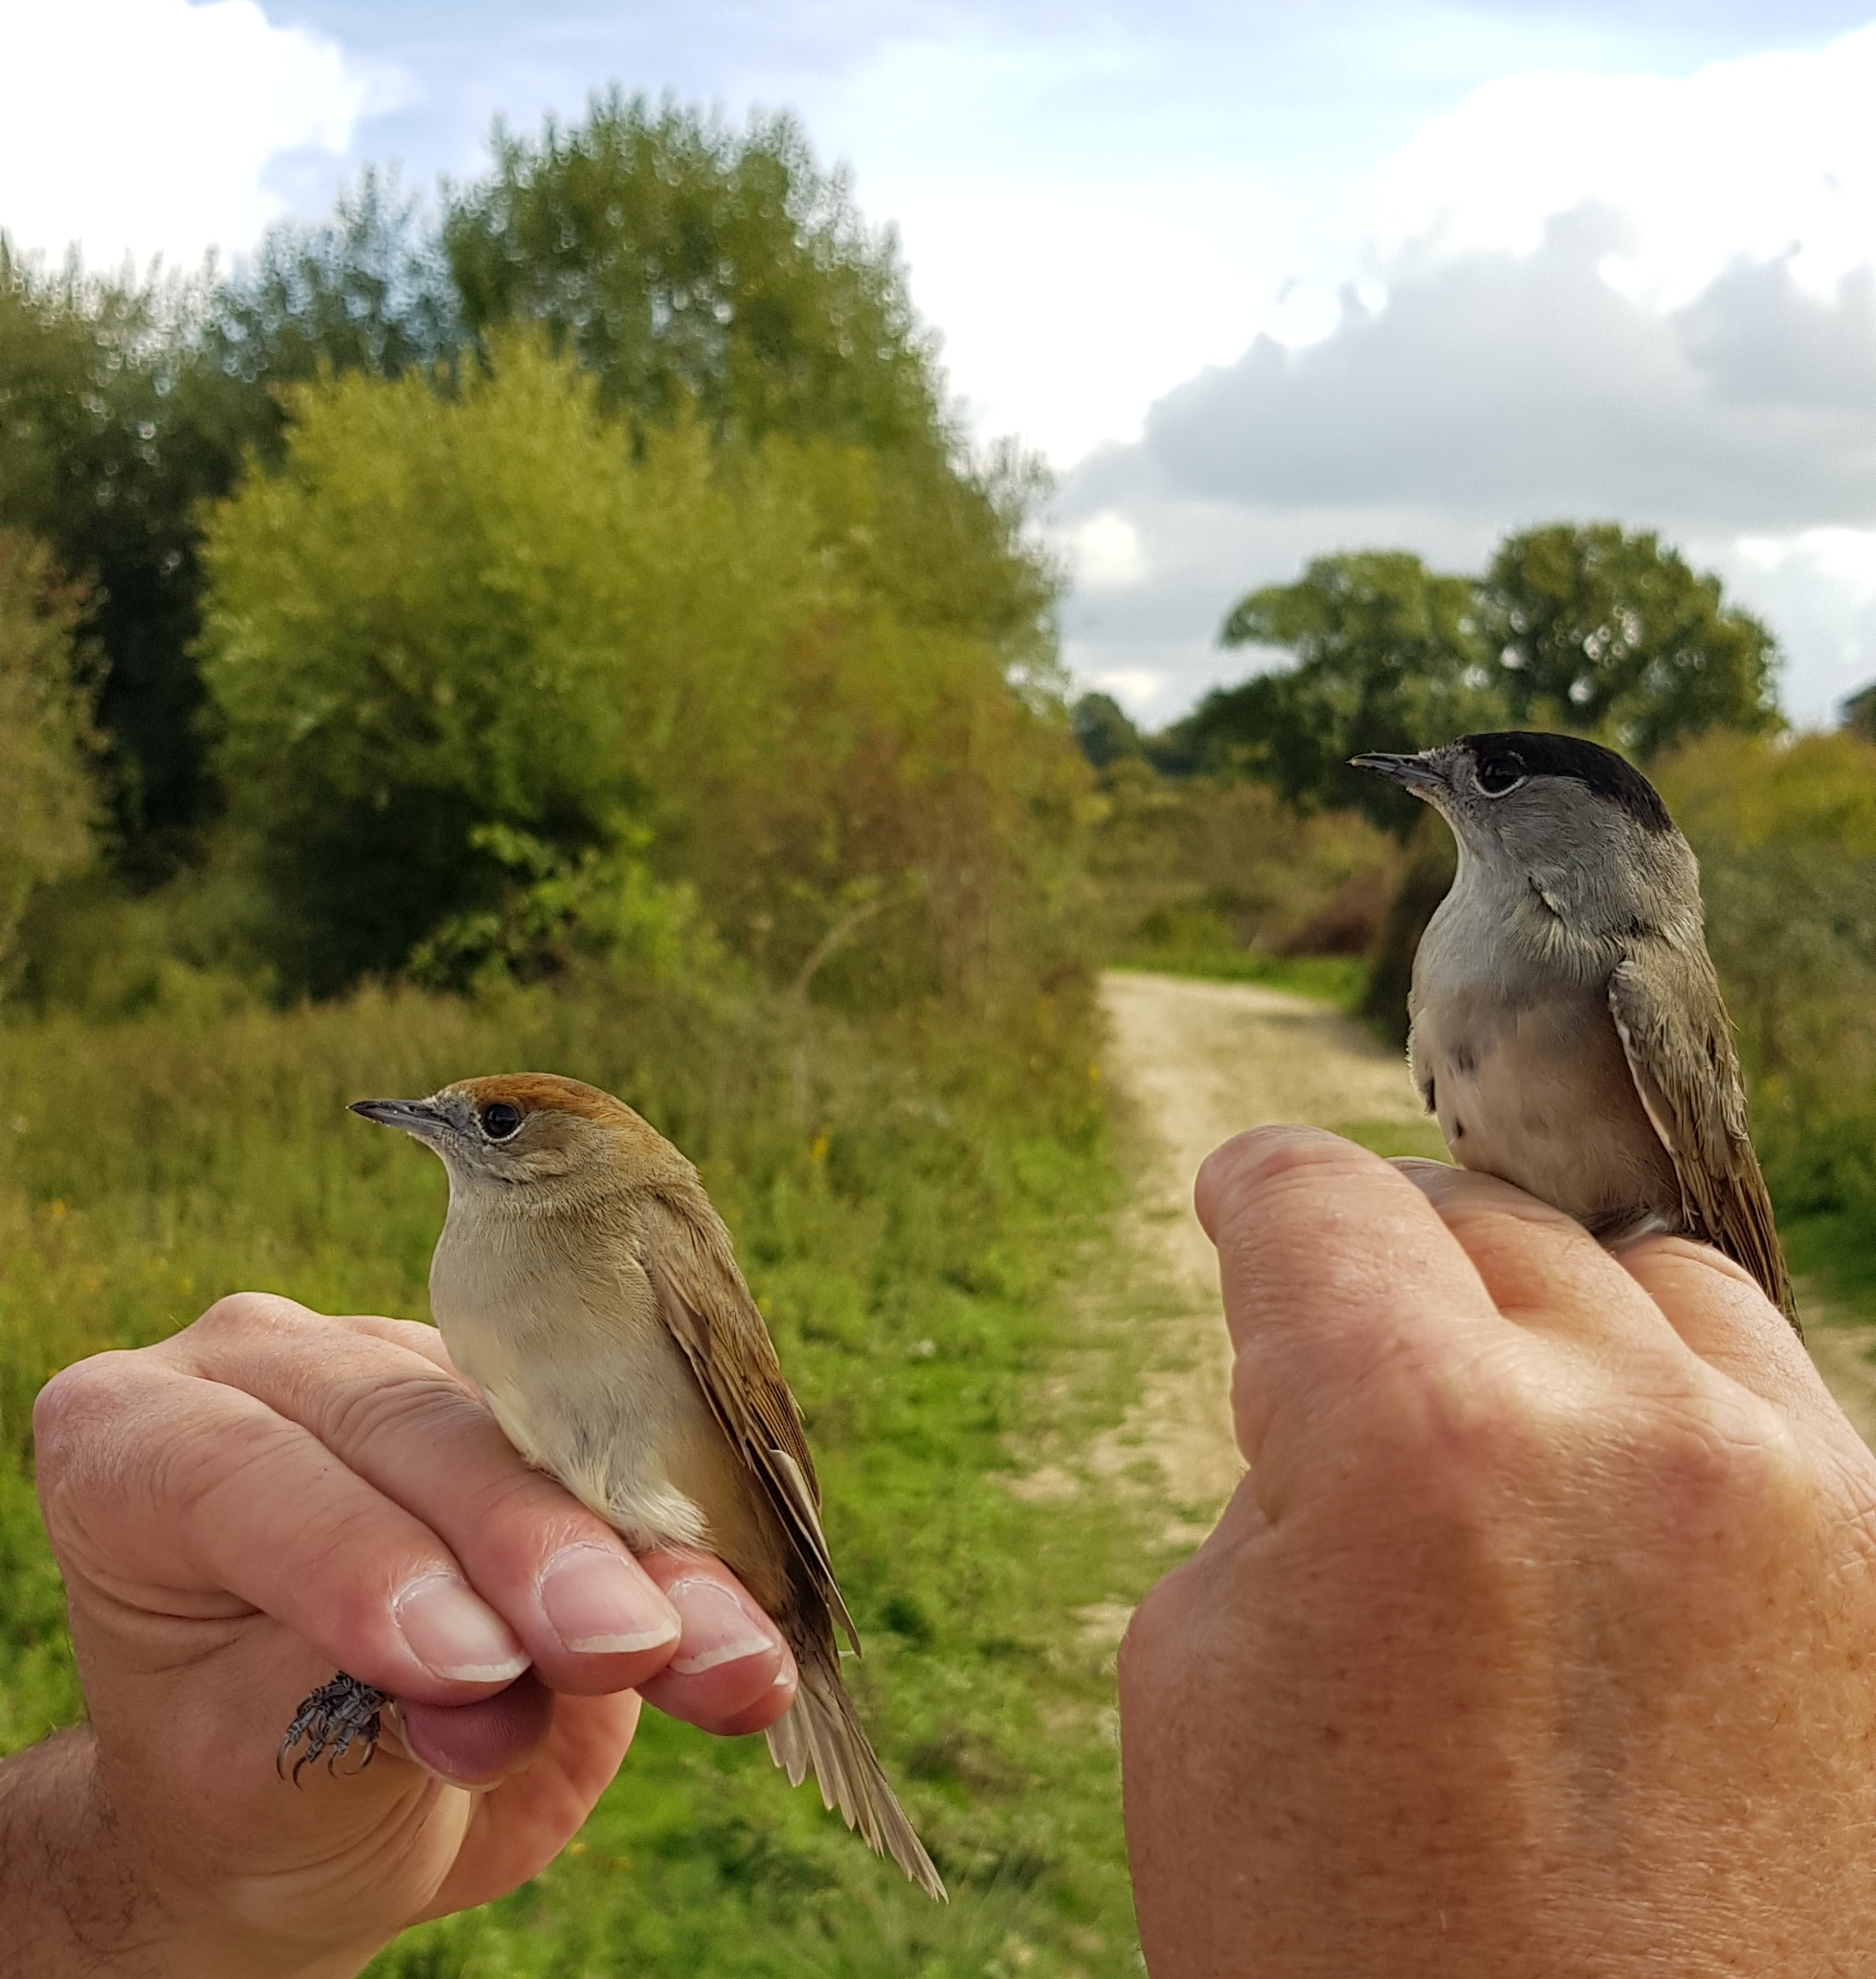 Blackcaps (female on left and male on right)